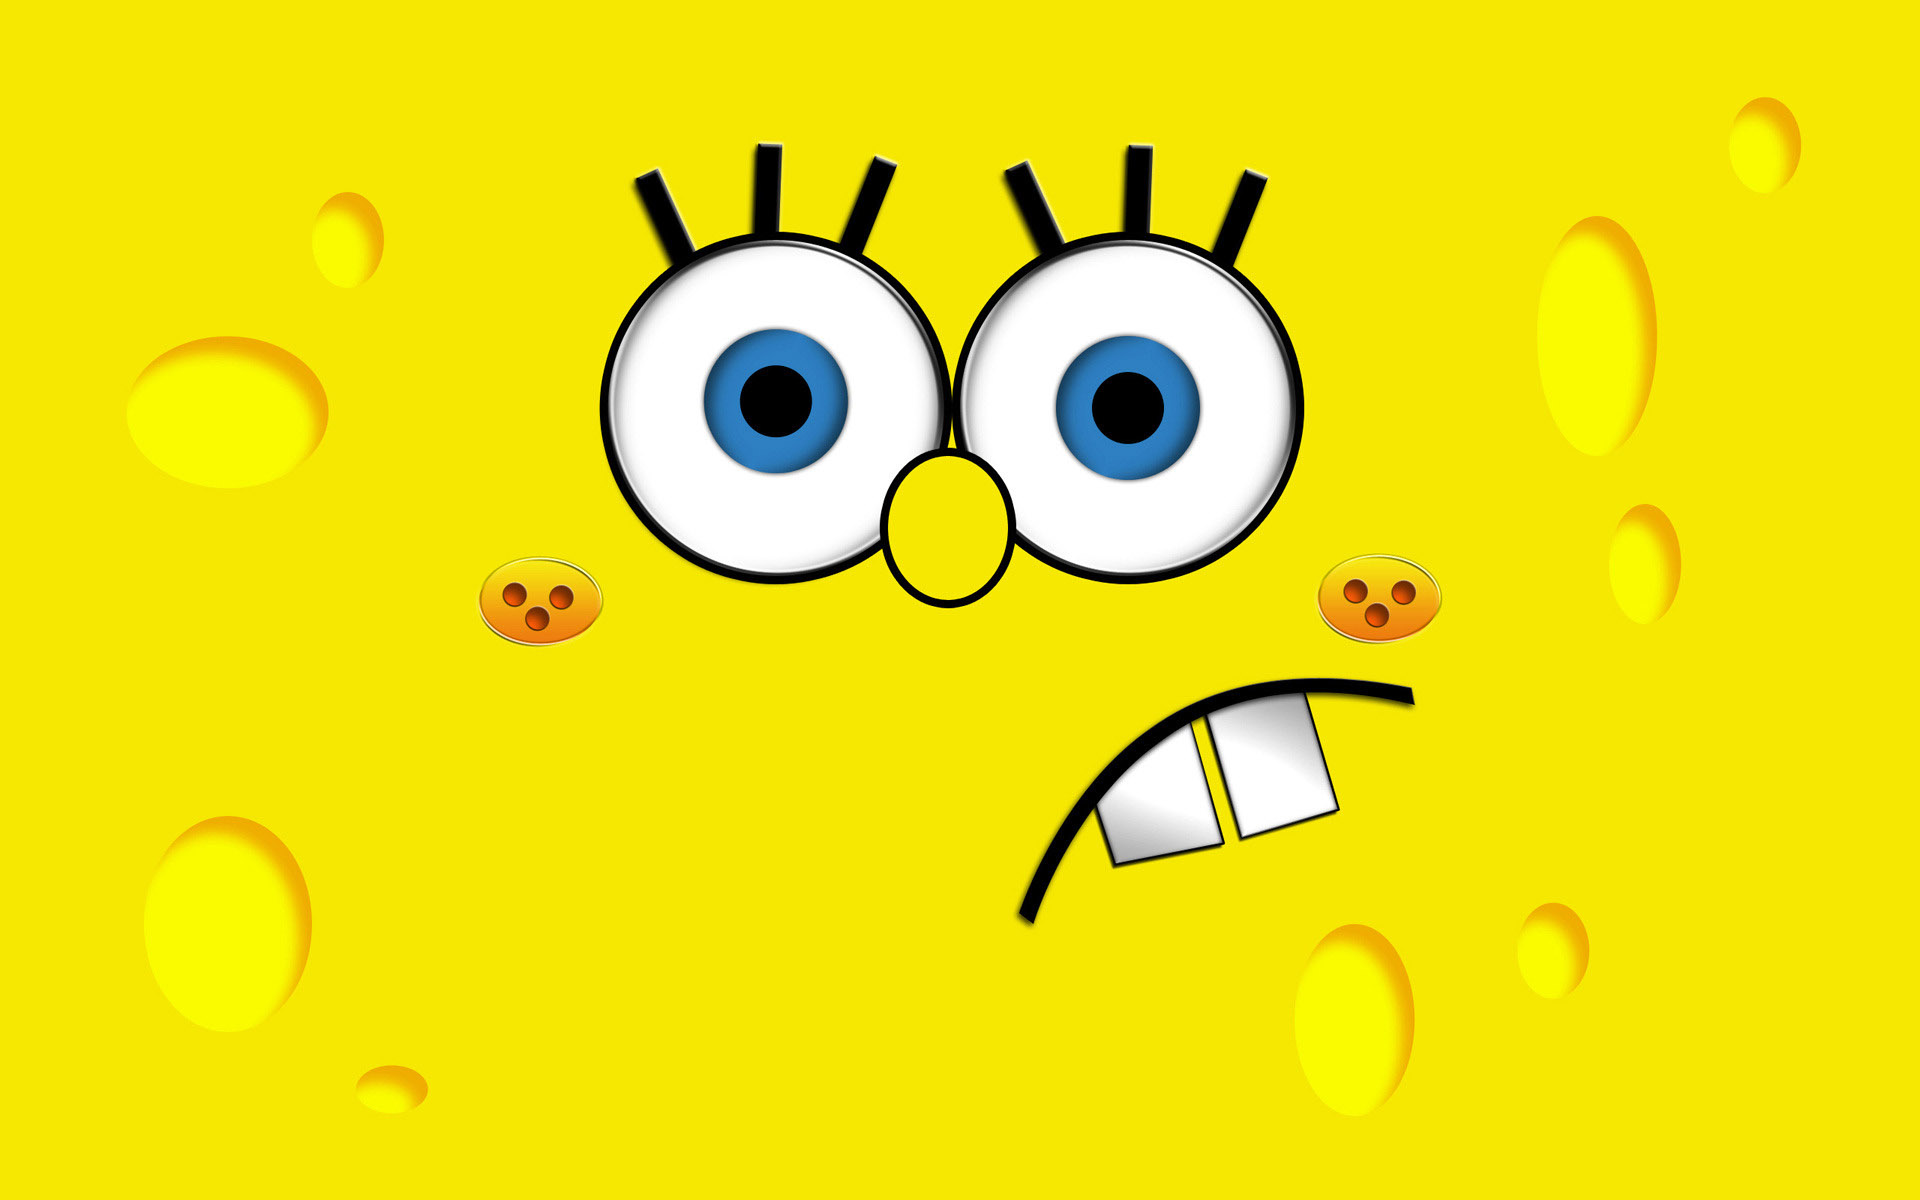 SpongeBob SquarePants wallpapers HD curious left